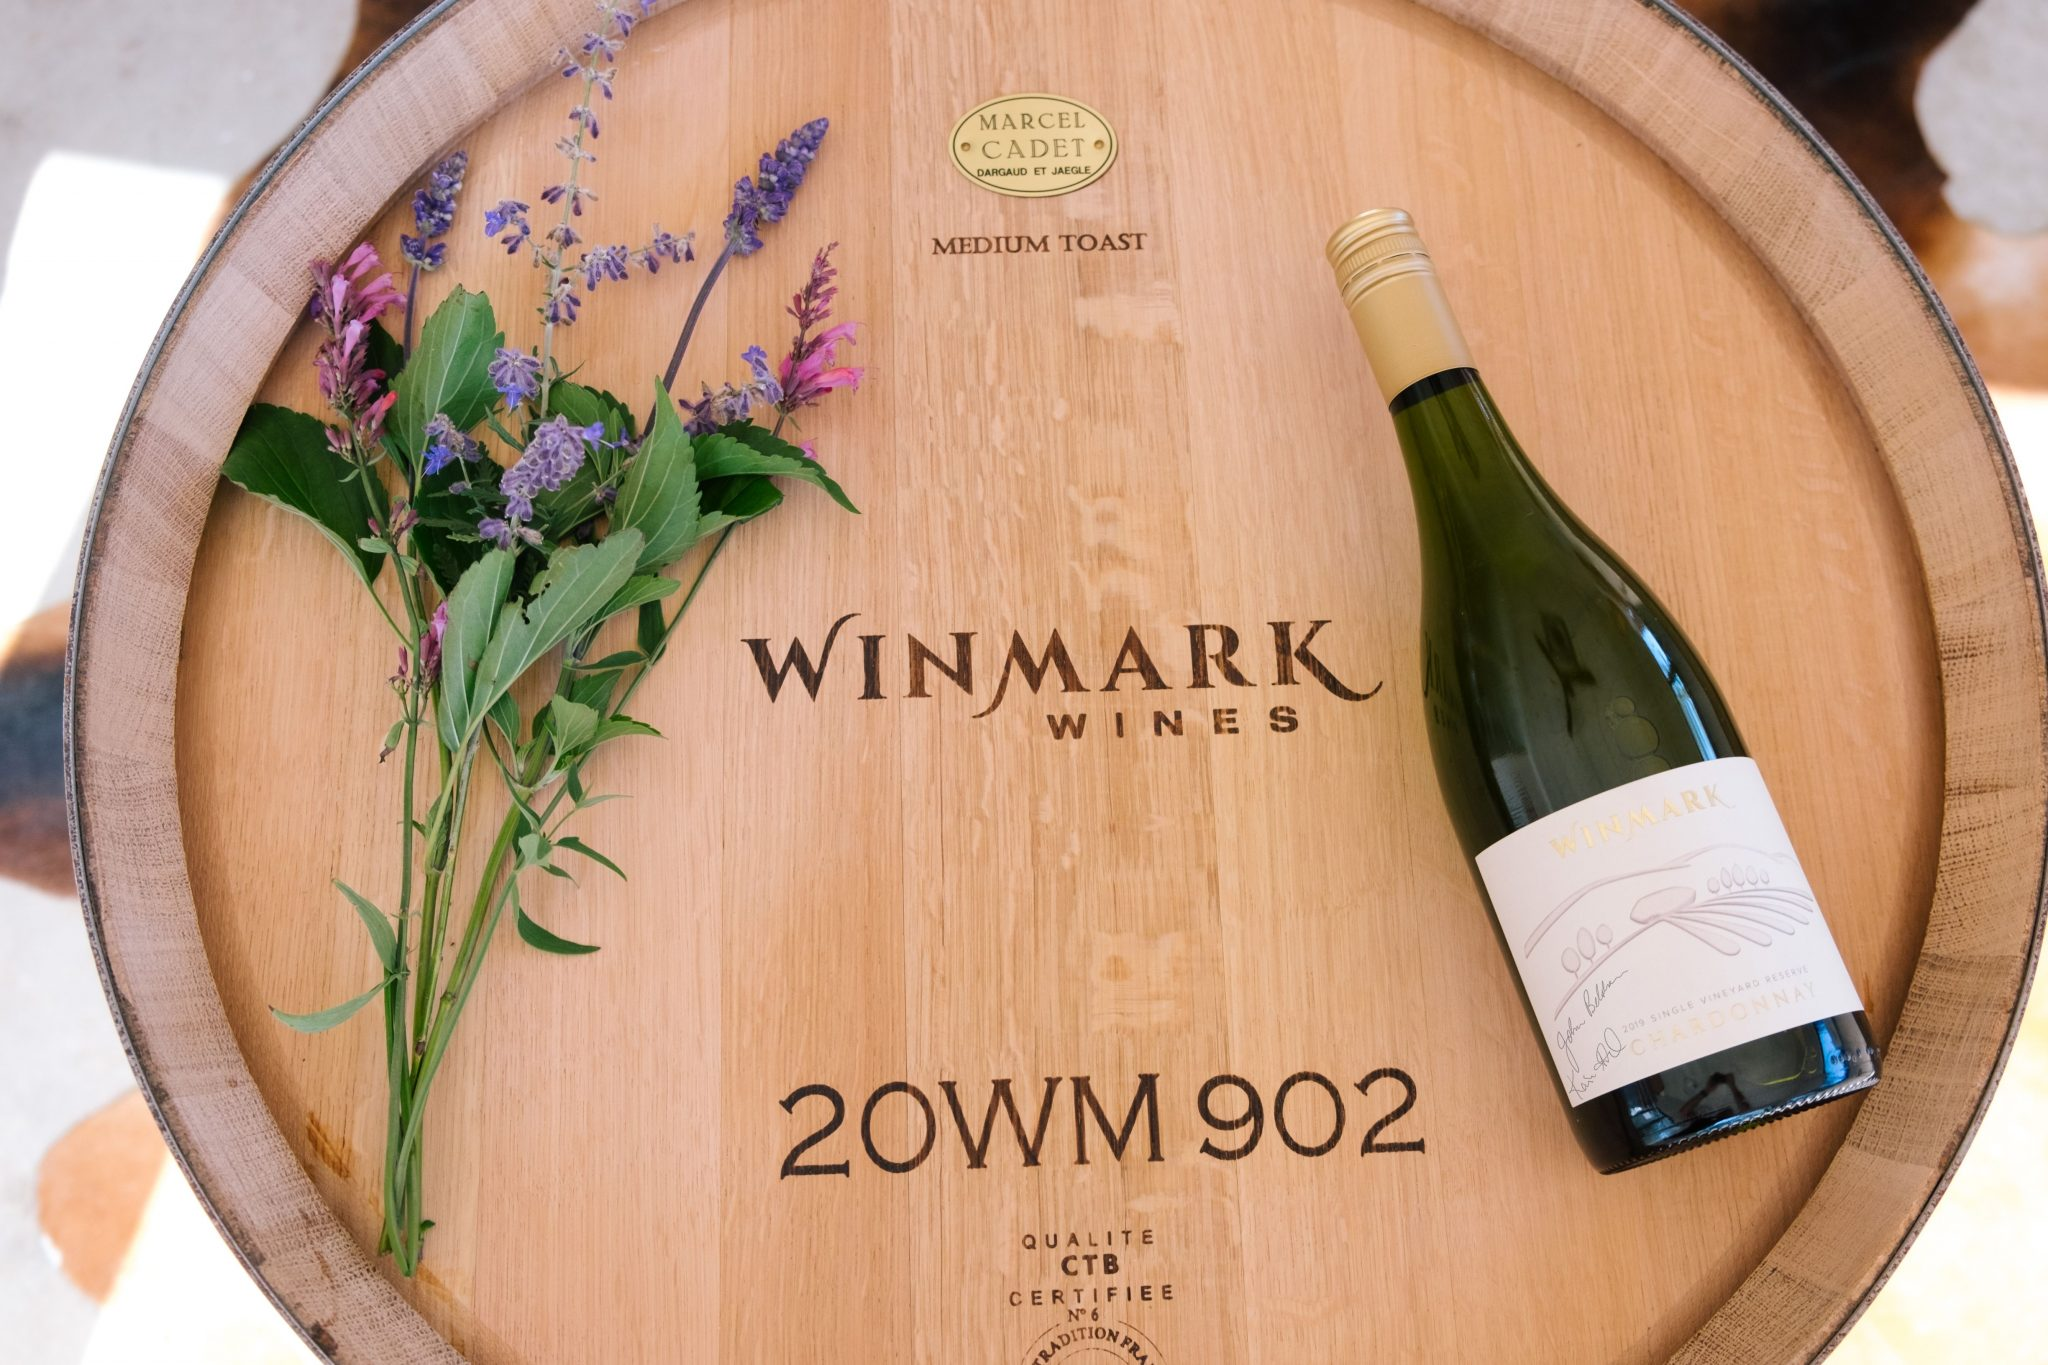 Winmark Wines Offer Exclusive Corporate Gifts for The Luxury Network Members